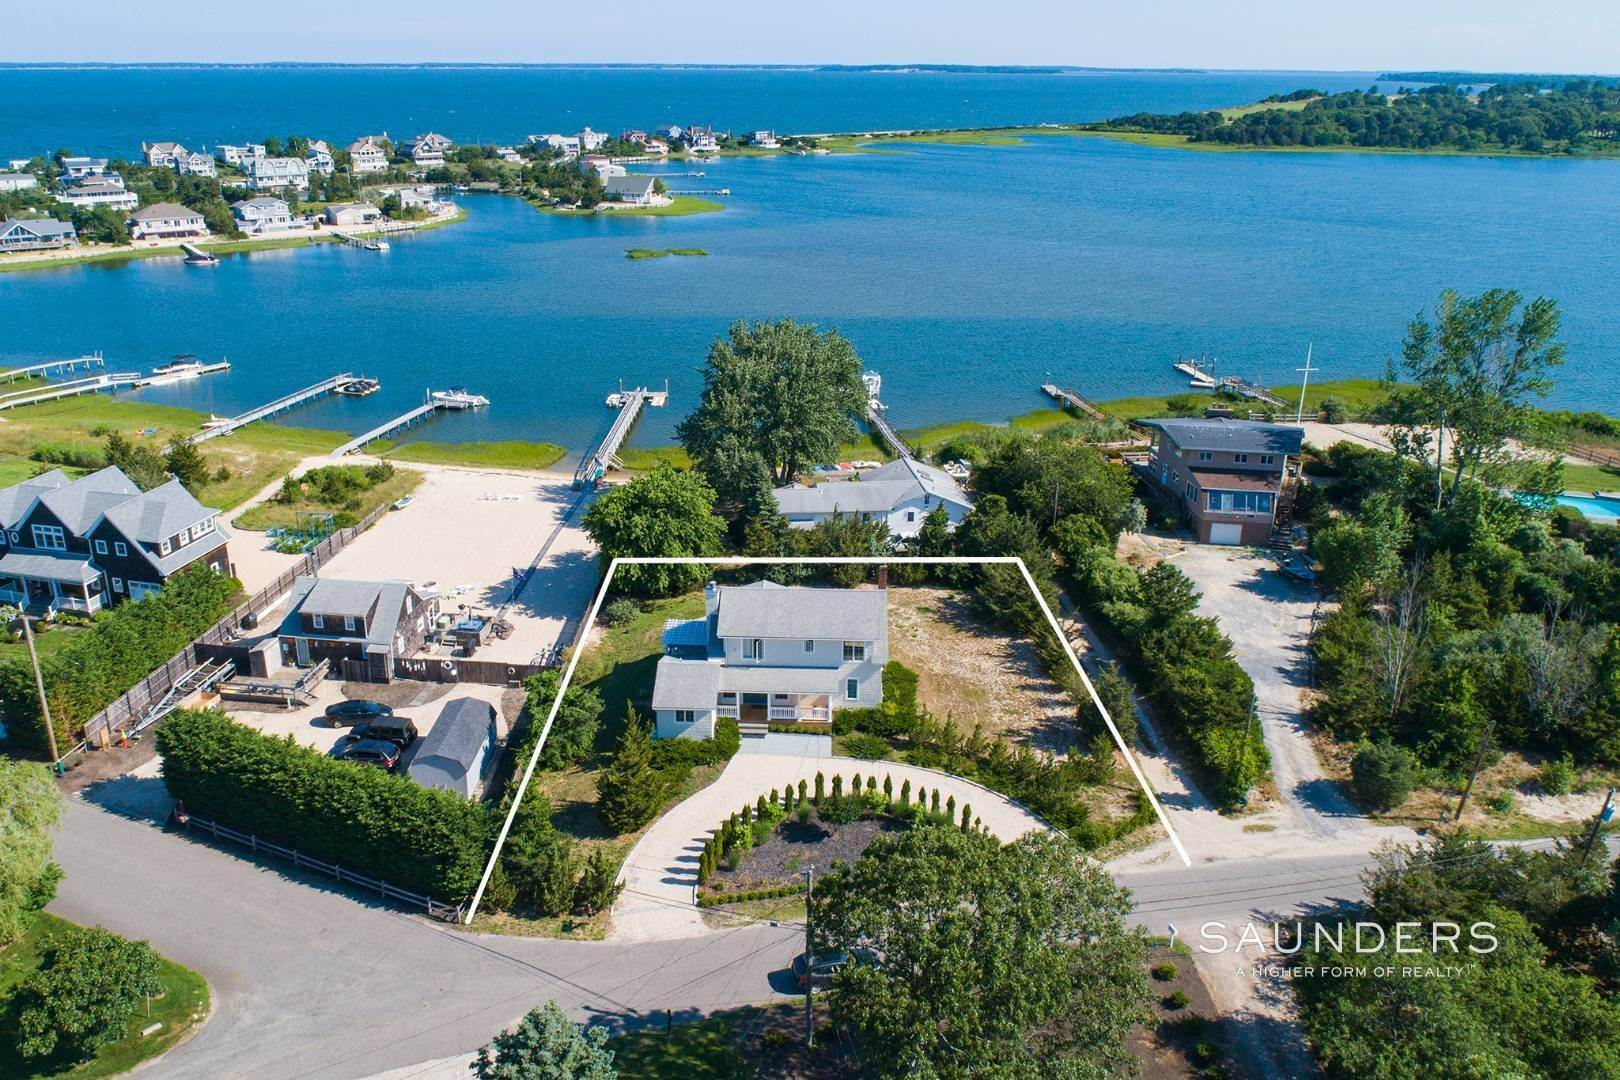 Single Family Homes for Sale at Renovated Beach House 39 Inlet Road East, Southampton, Southampton Town, NY 11968